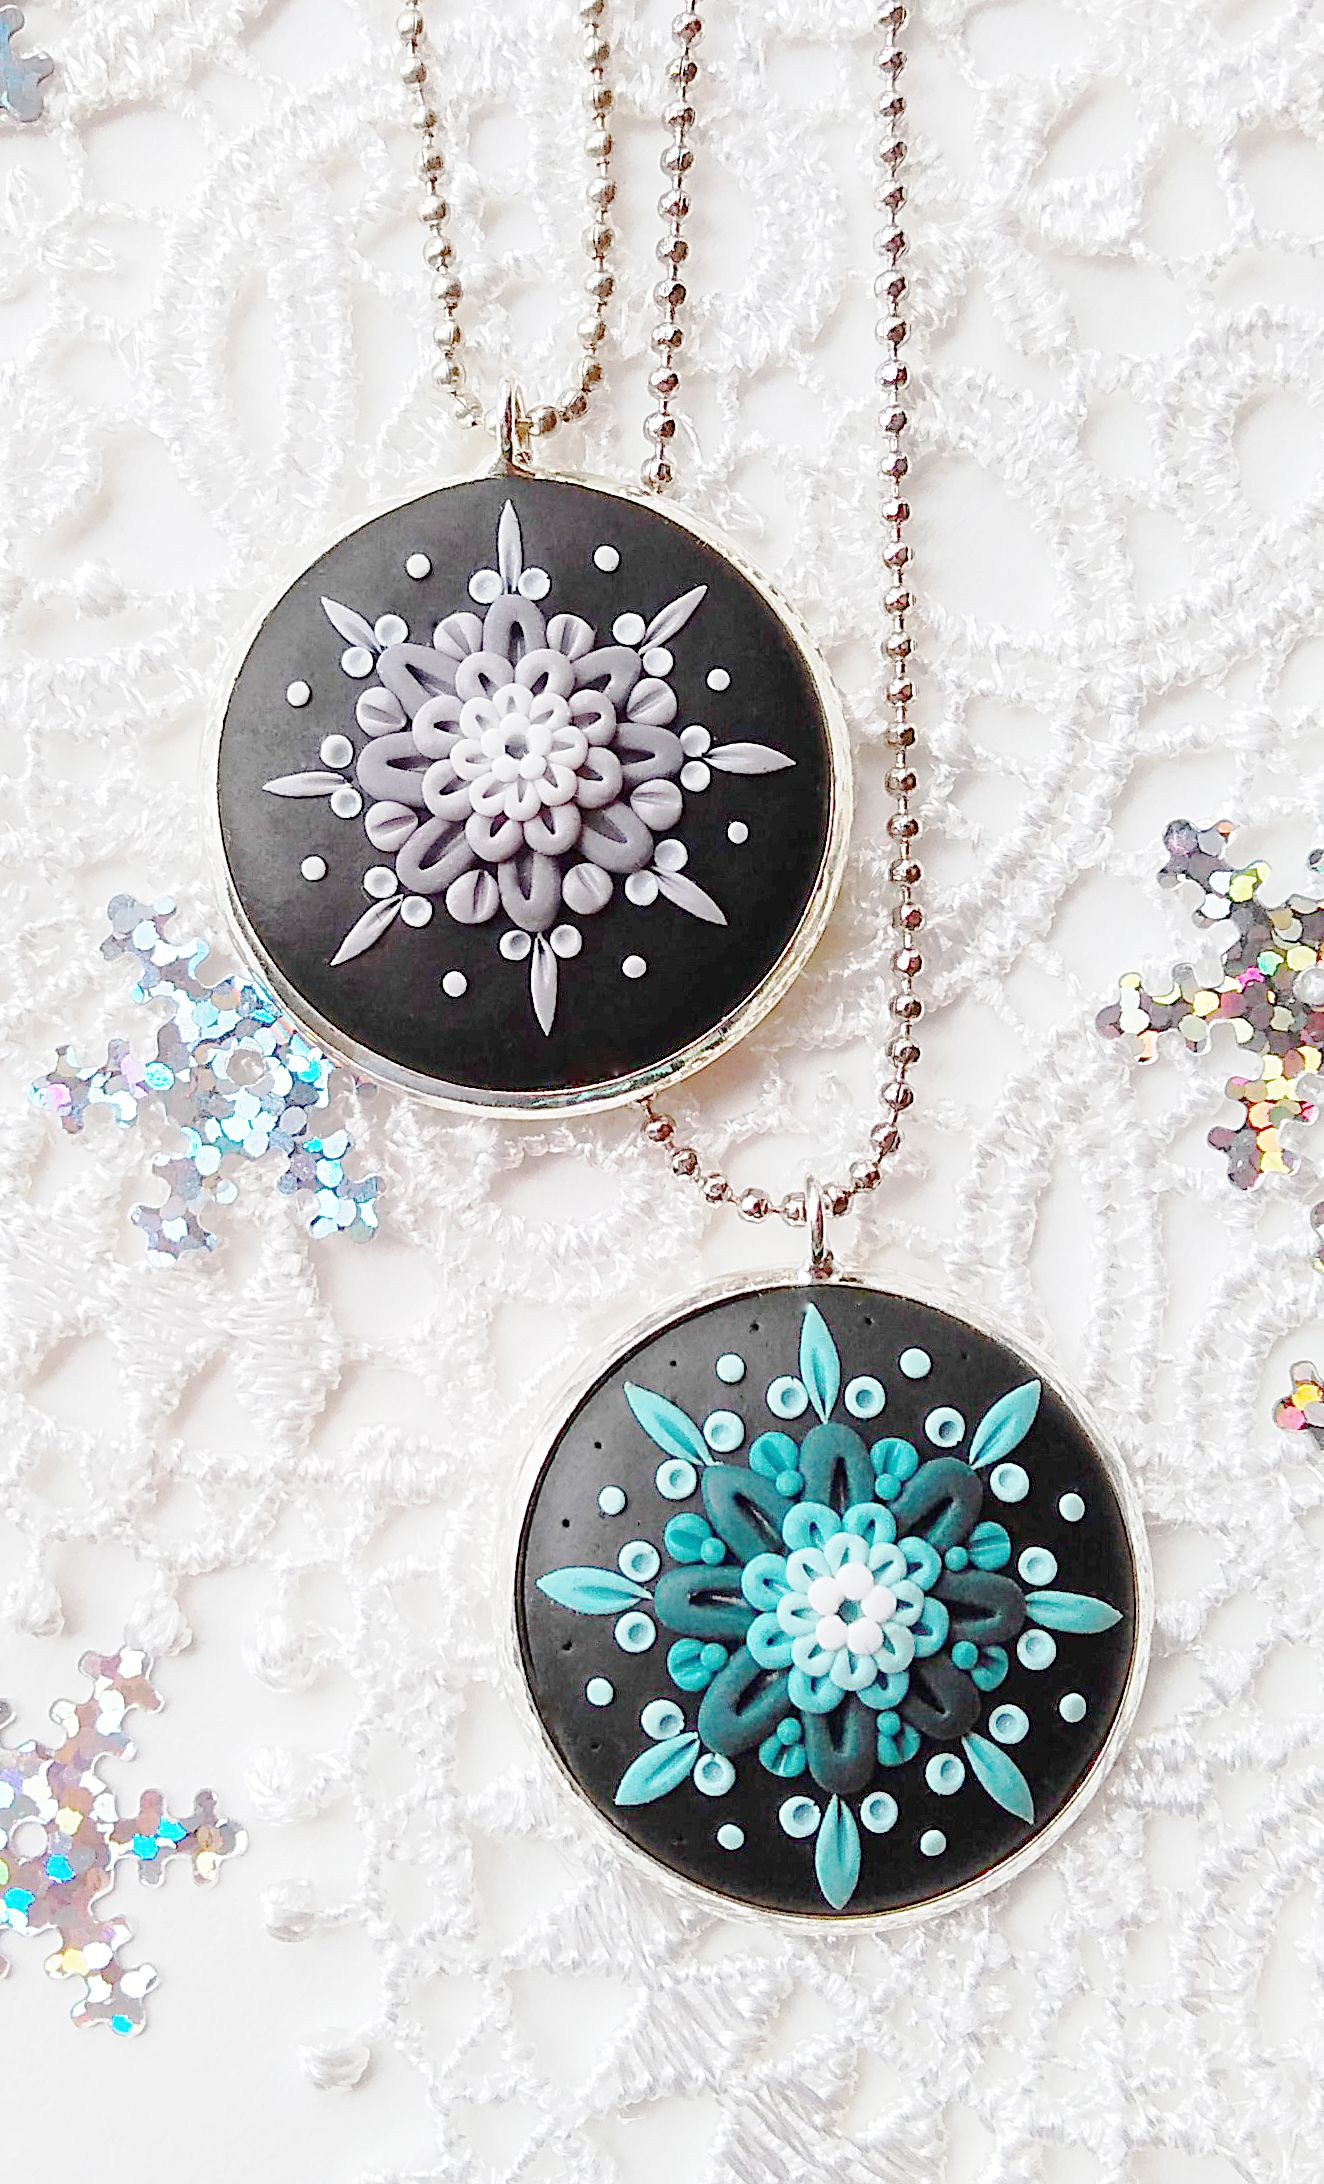 Handmade Applique Snowflake Earrings made with Blue and White polymer clay